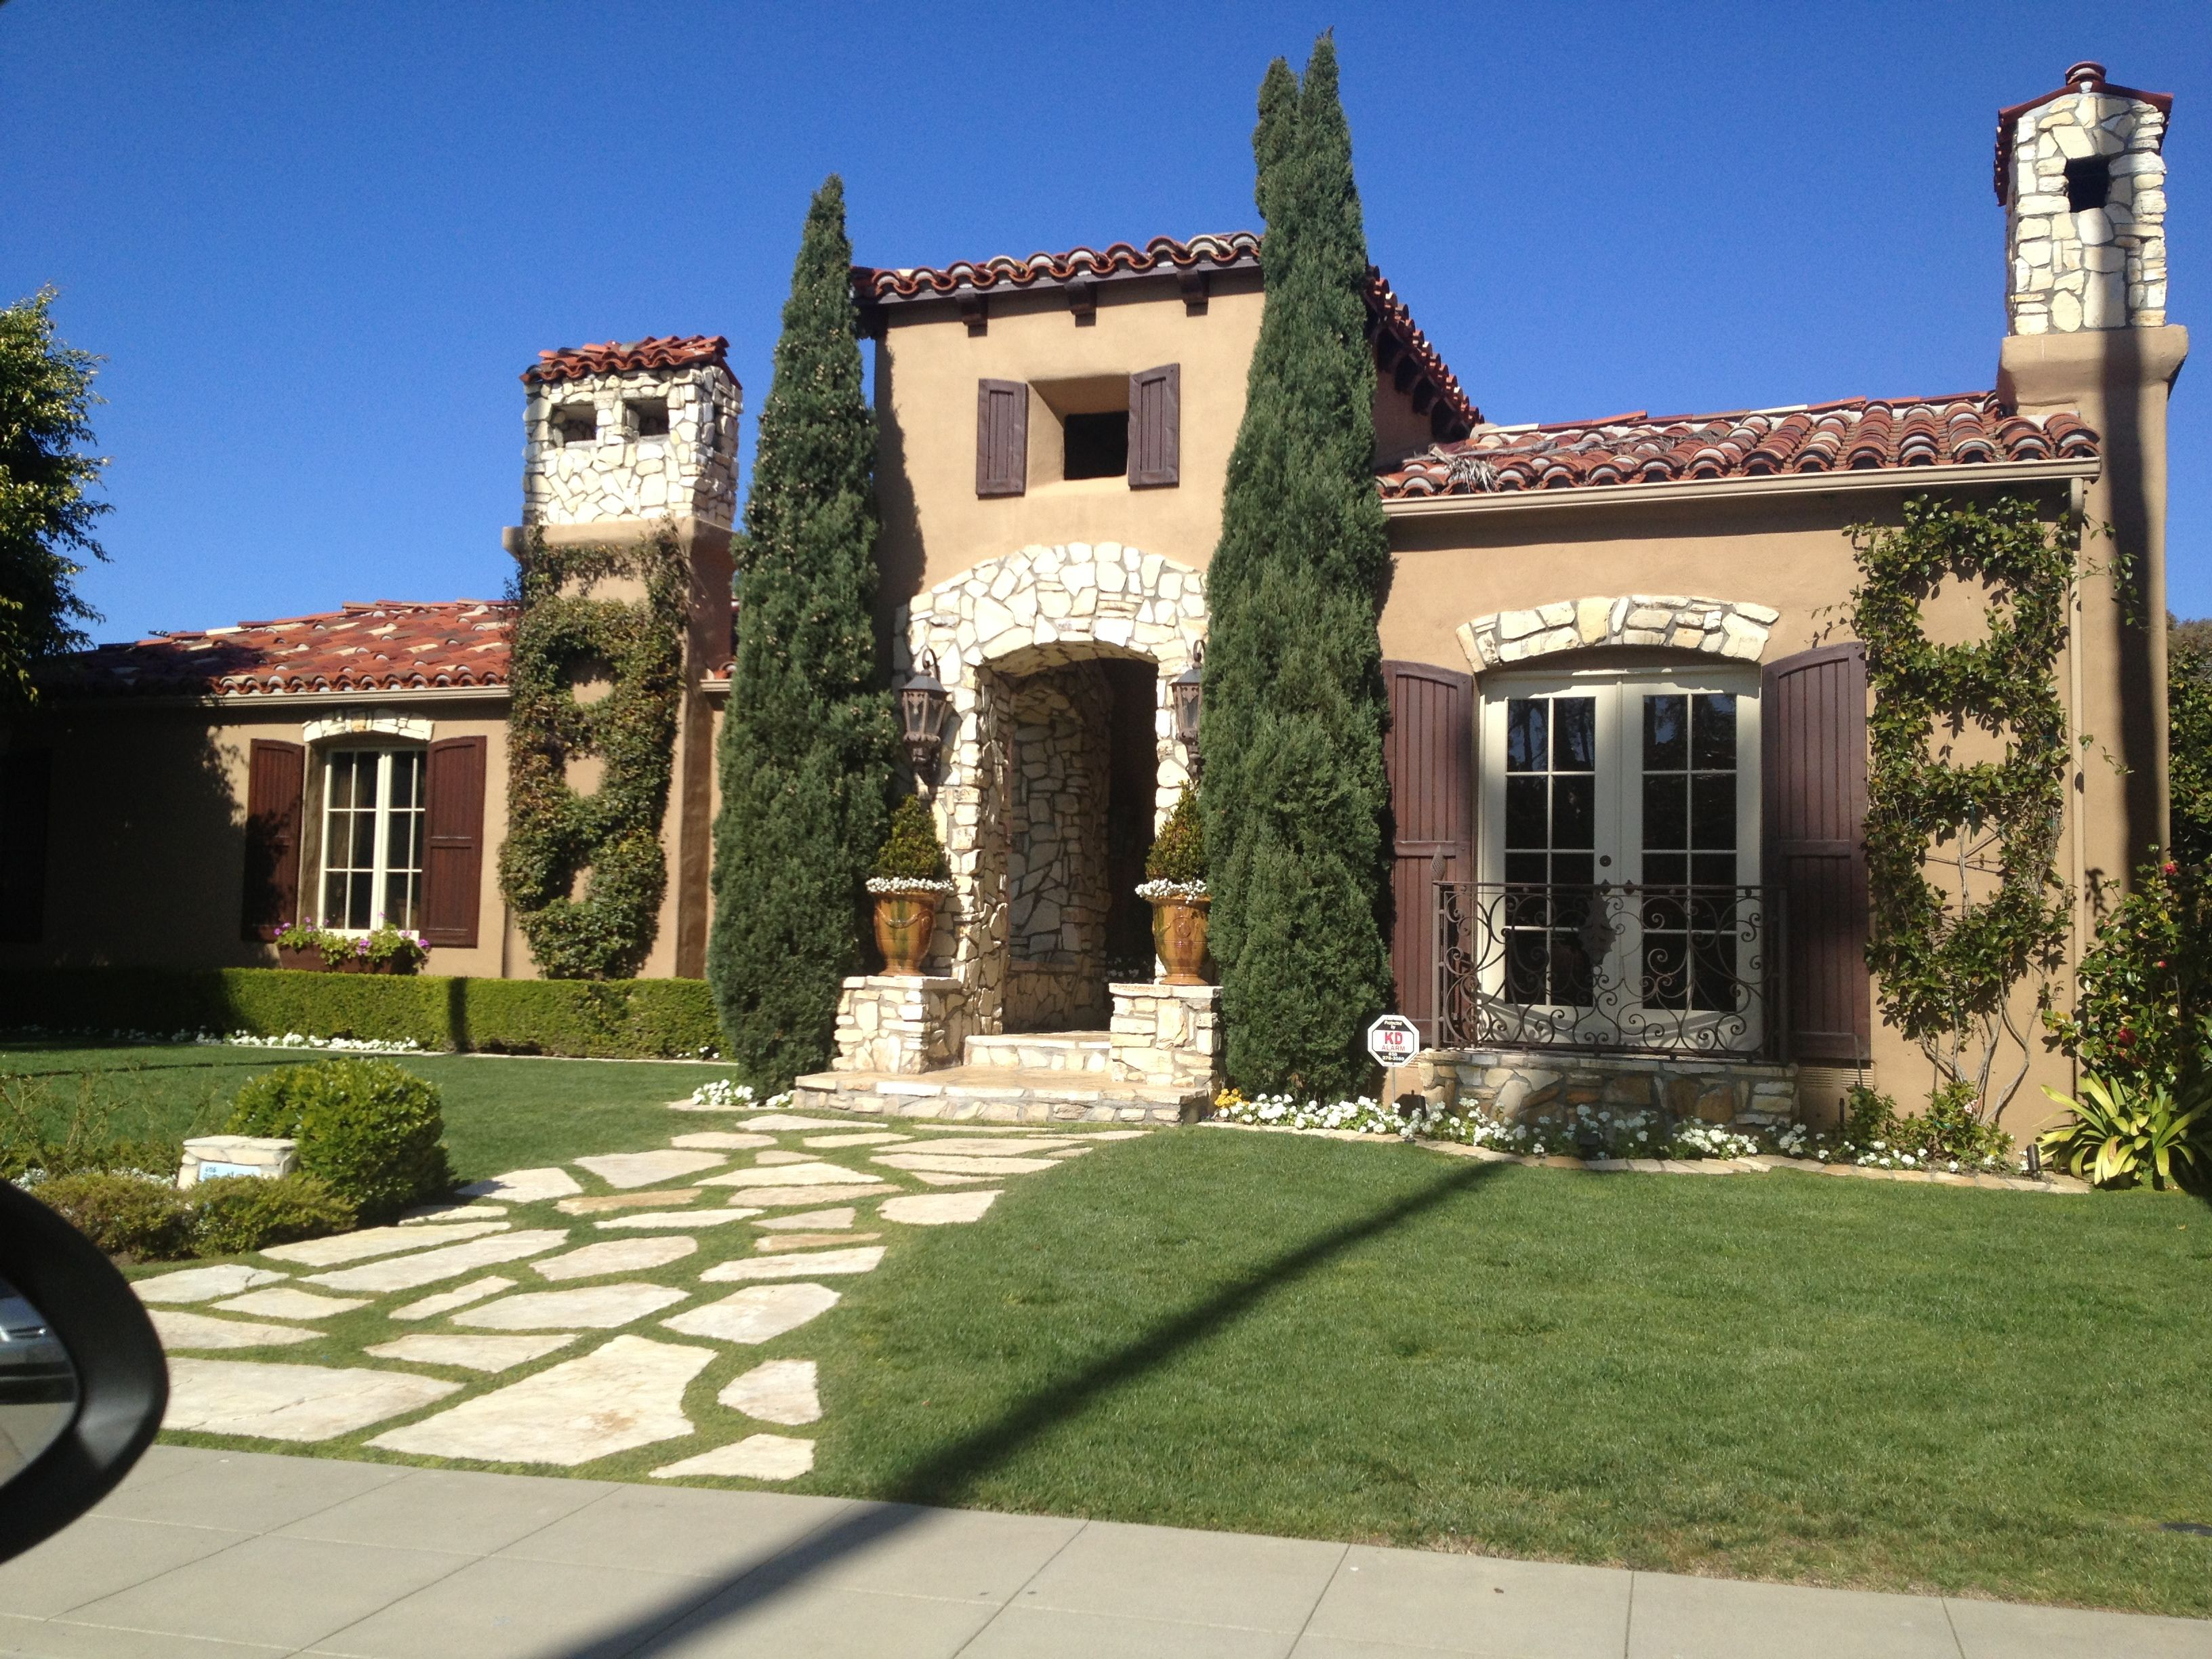 Italian Style Home Like The Towers Masking The Chimneys Italian Style Home Mediterranean Homes Italian Farmhouse Style